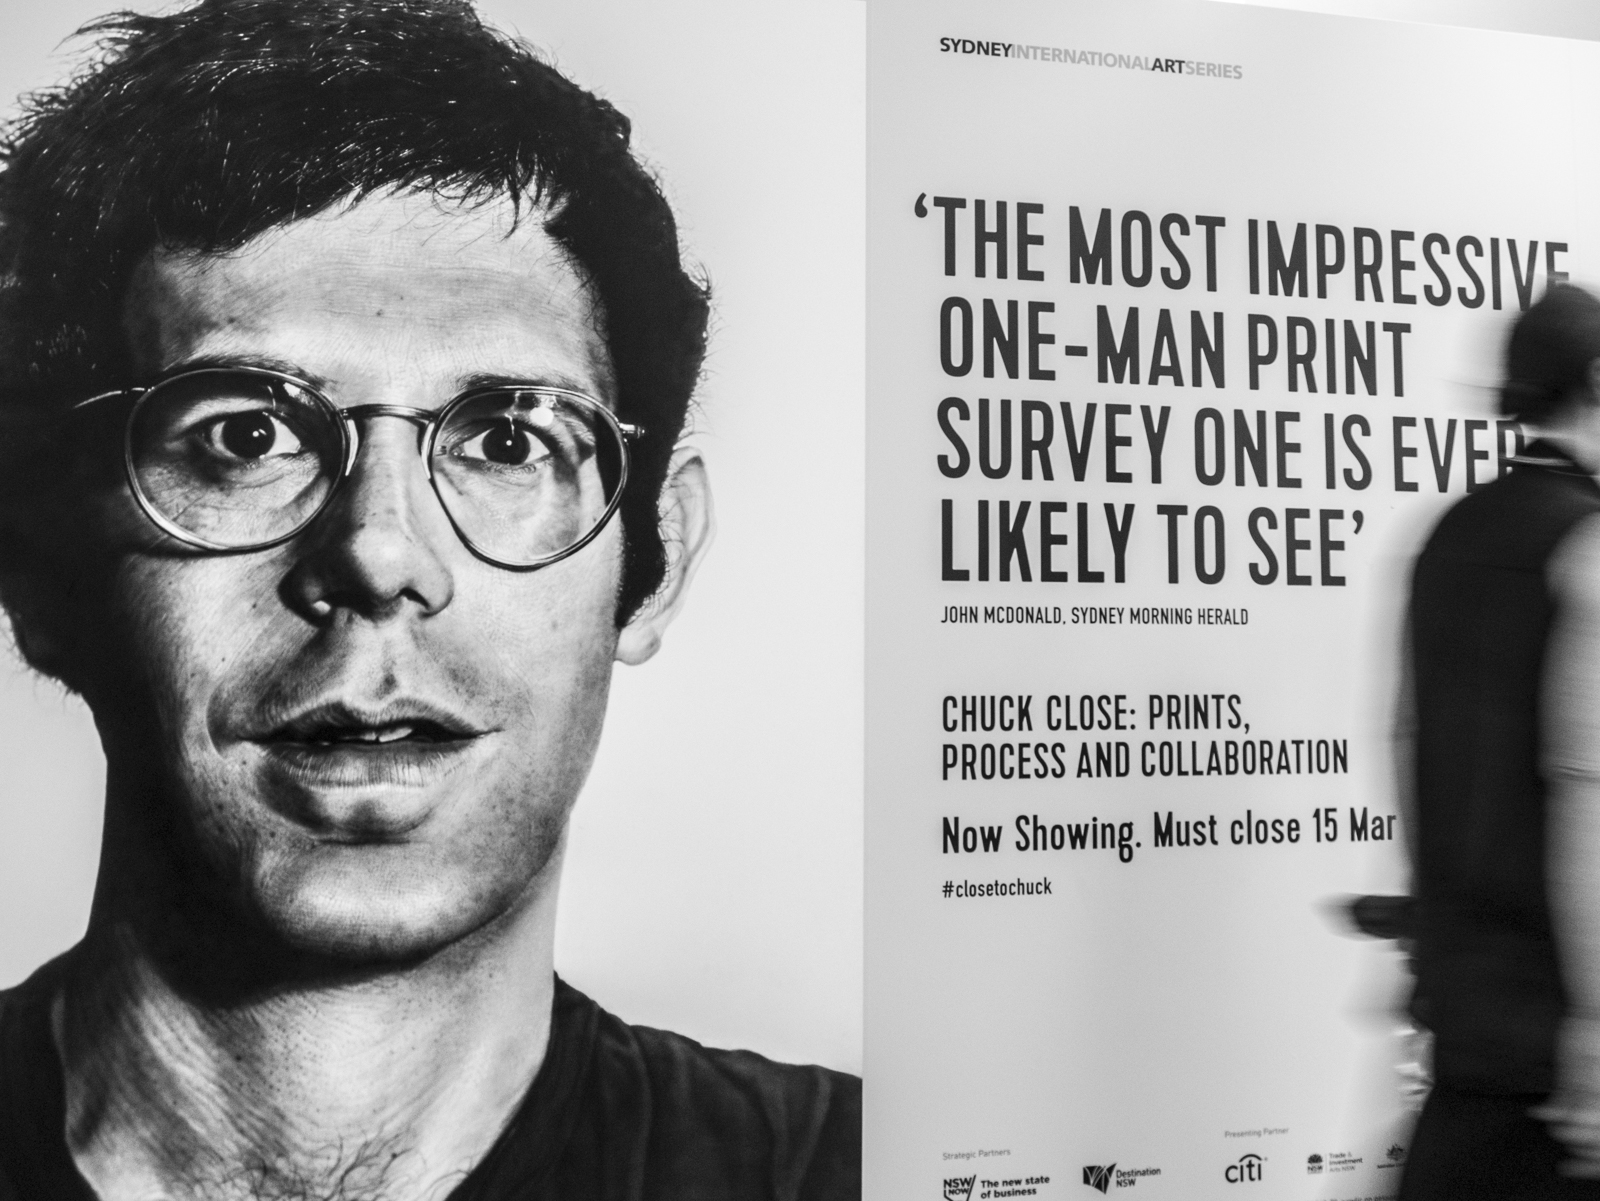 Chuck Close: Prints, Process and Collaboration at the MCA in Syndey